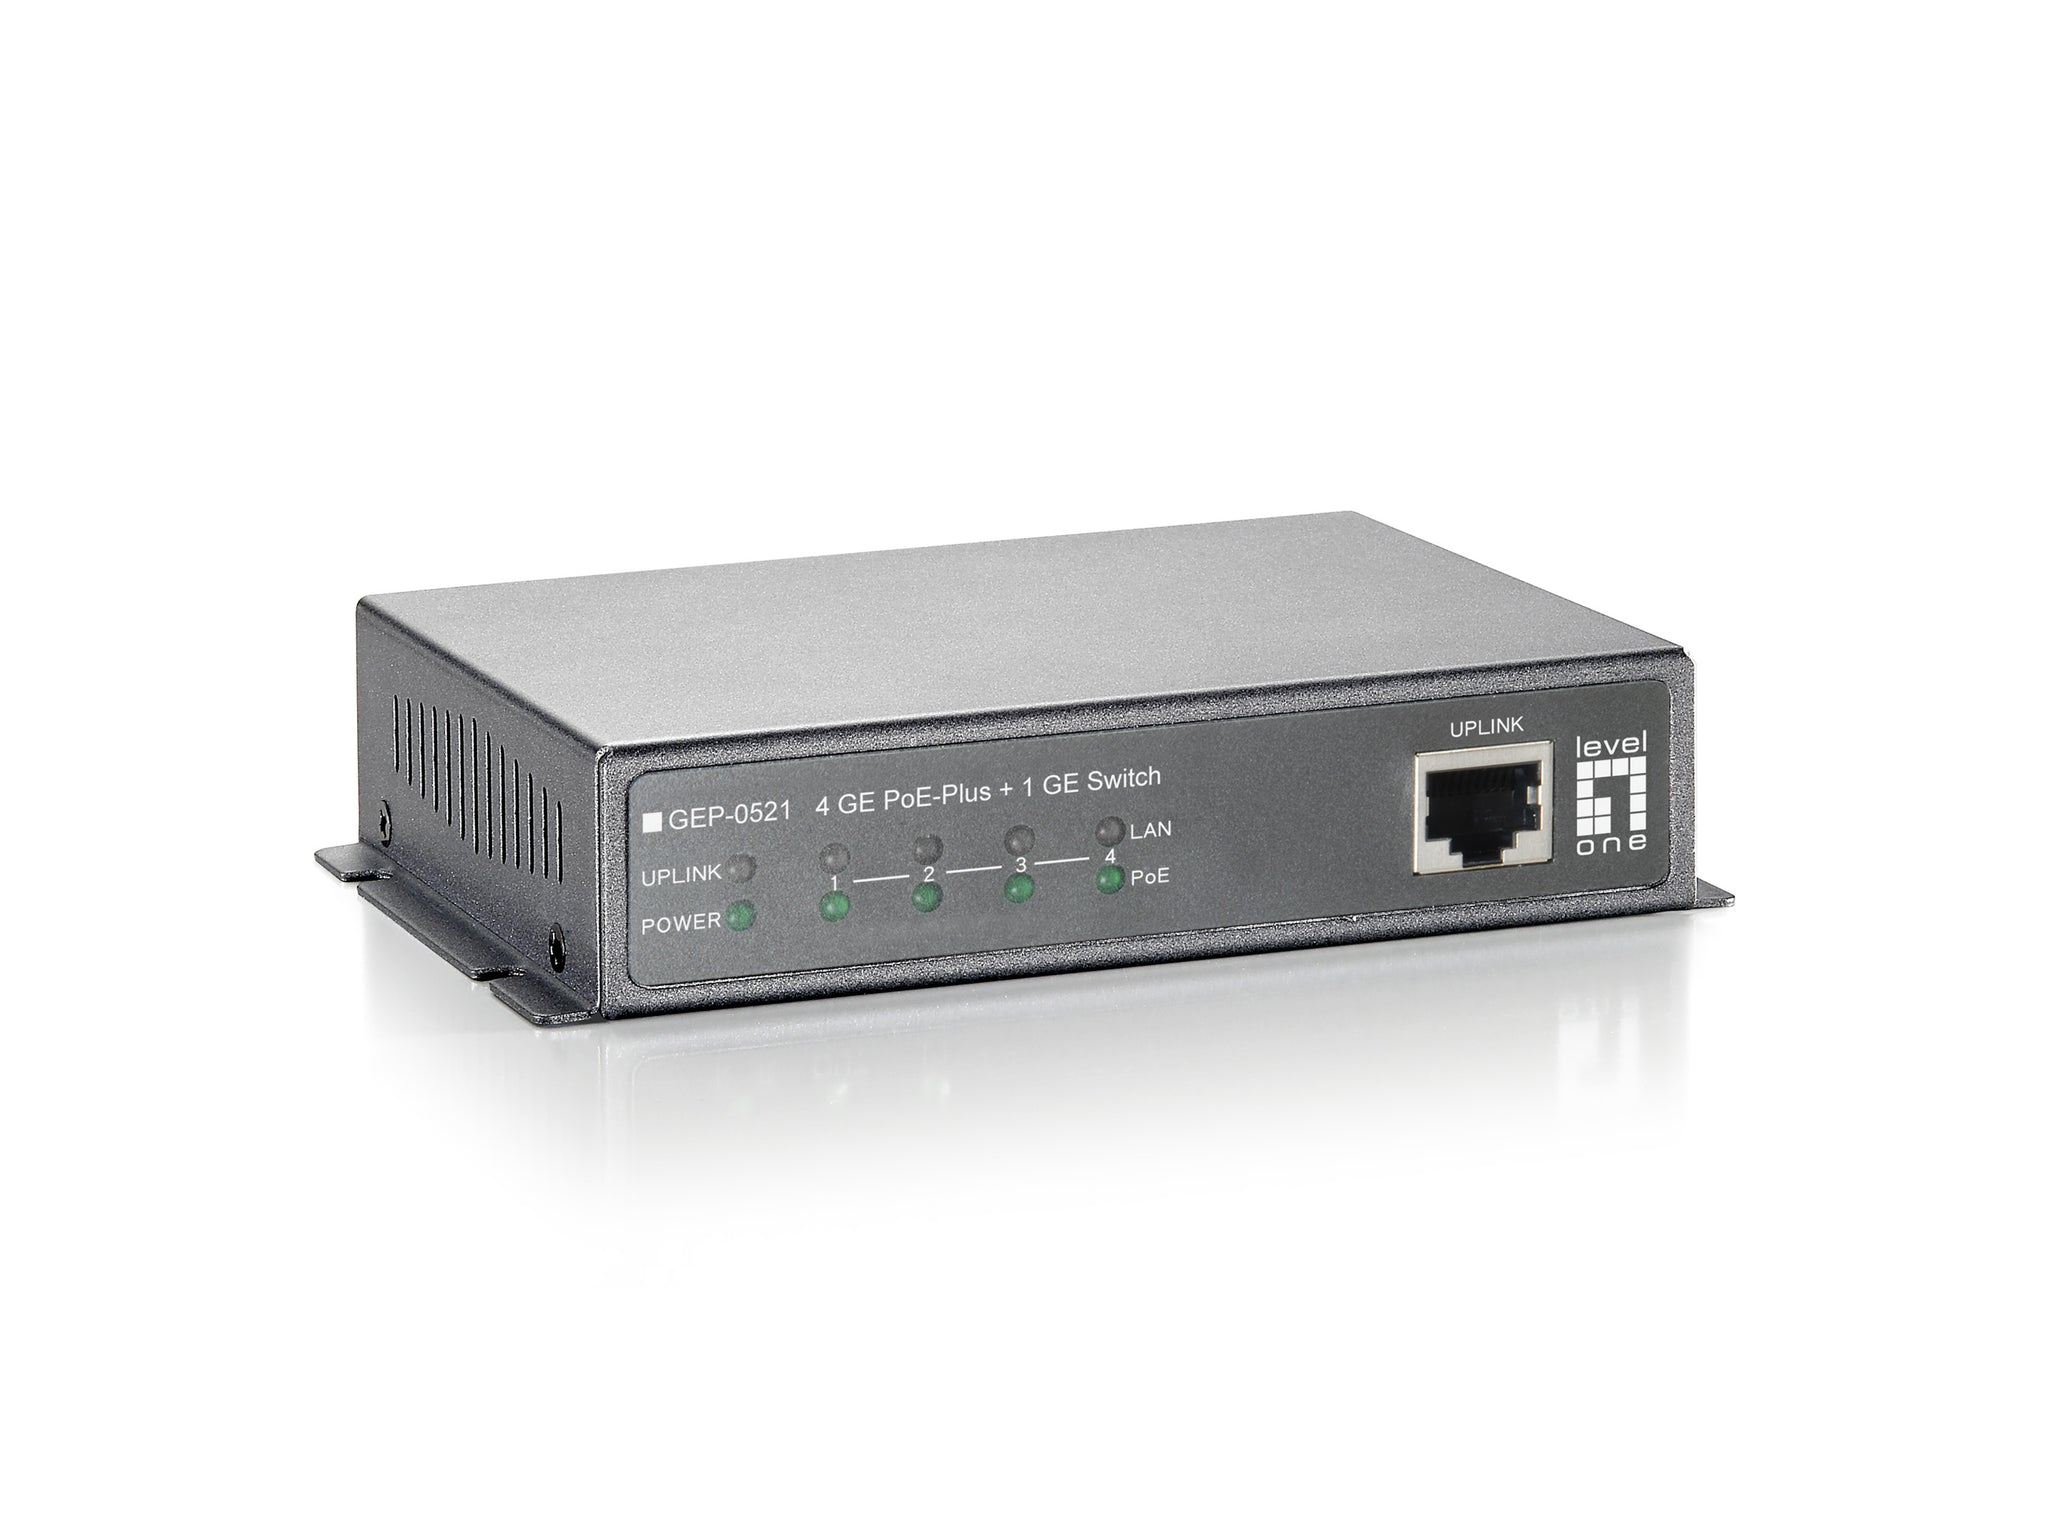 GEP-0521 4GE POE PLUS +1GE SWITCH 120W